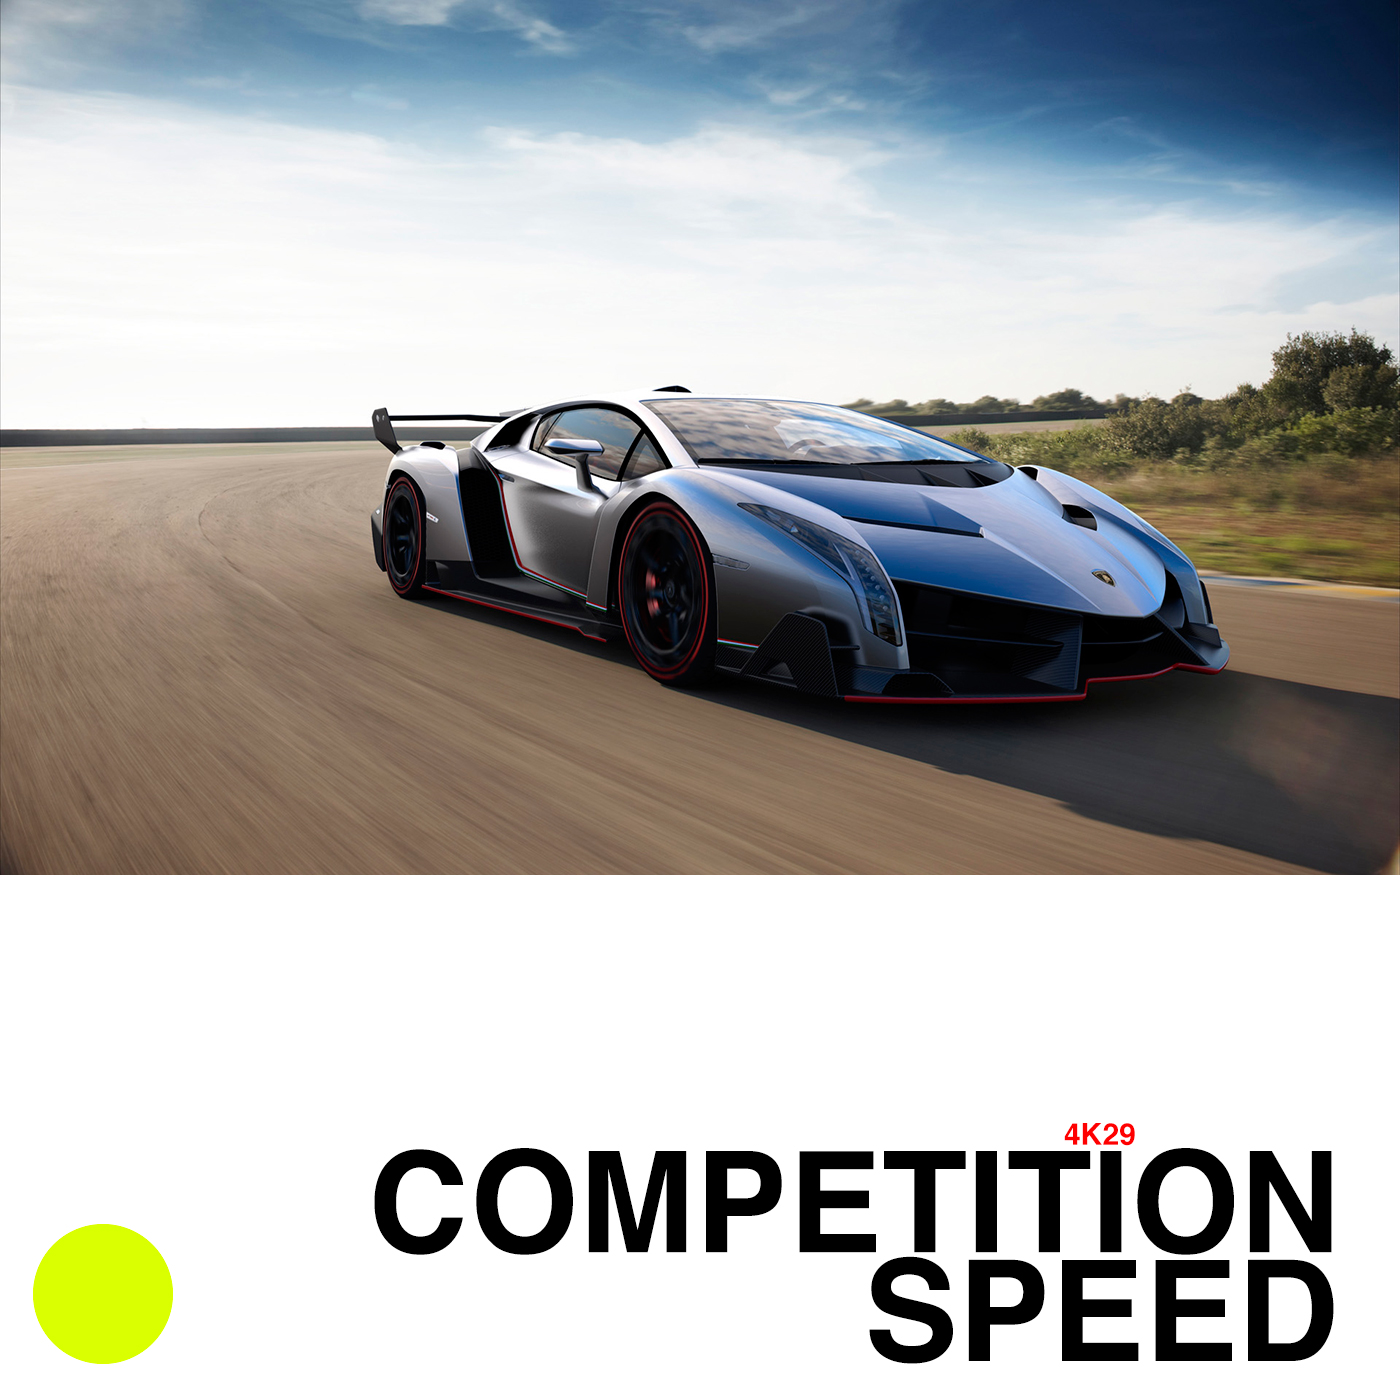 COMPETITION SPEED 4K29 MOBILE640